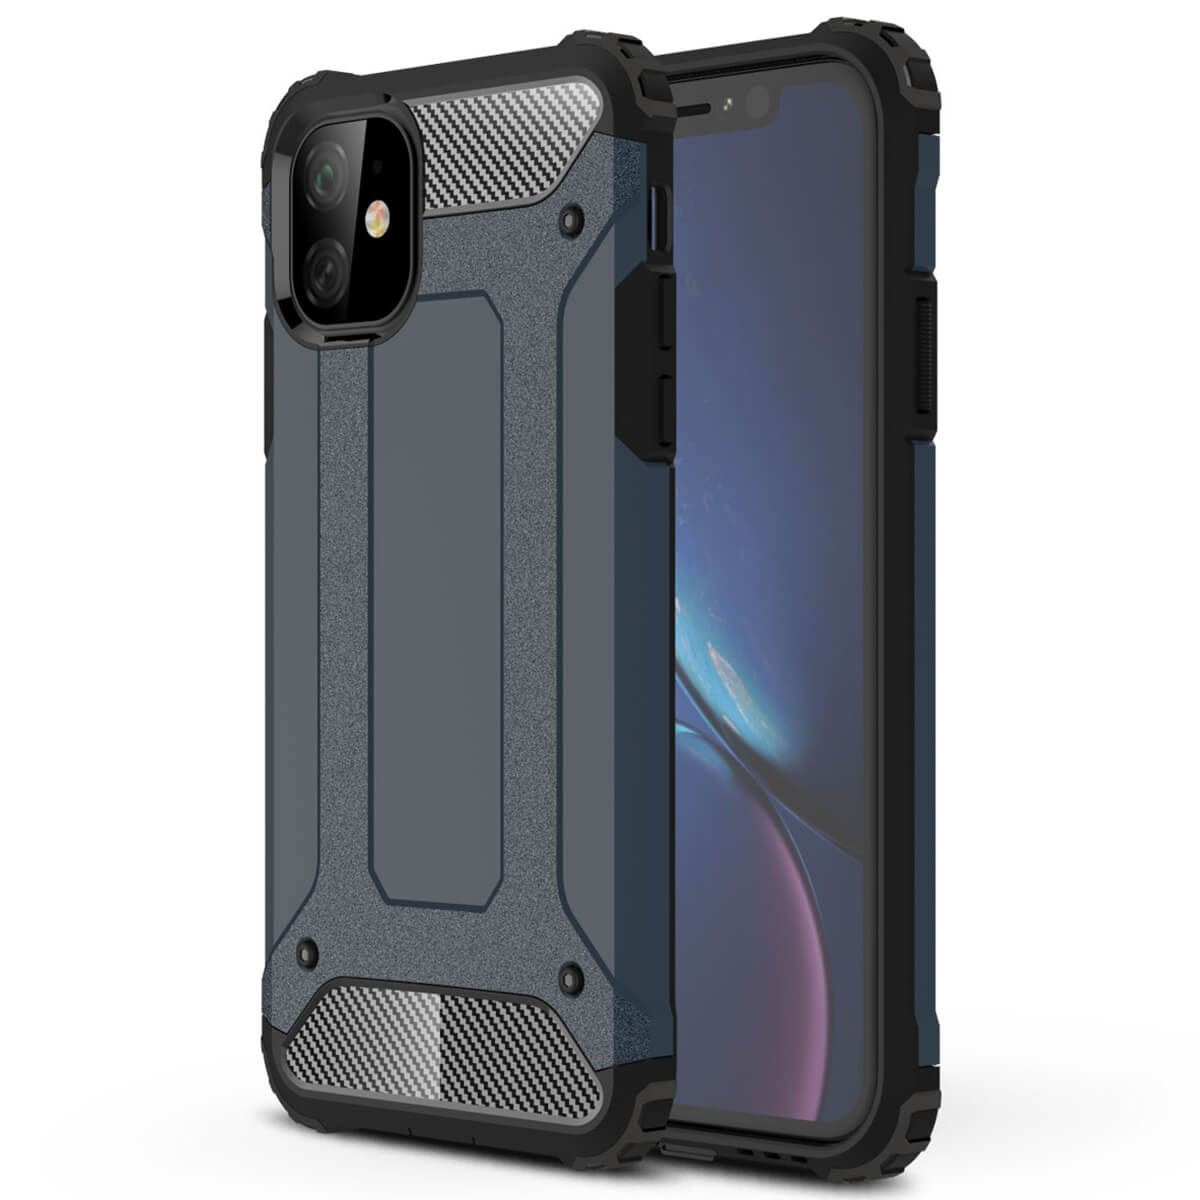 Shockproof-Bumper-Case-For-Apple-iPhone-10-X-8-7-Plus-6s-5s-Hybrid-Armor-Rugged thumbnail 5